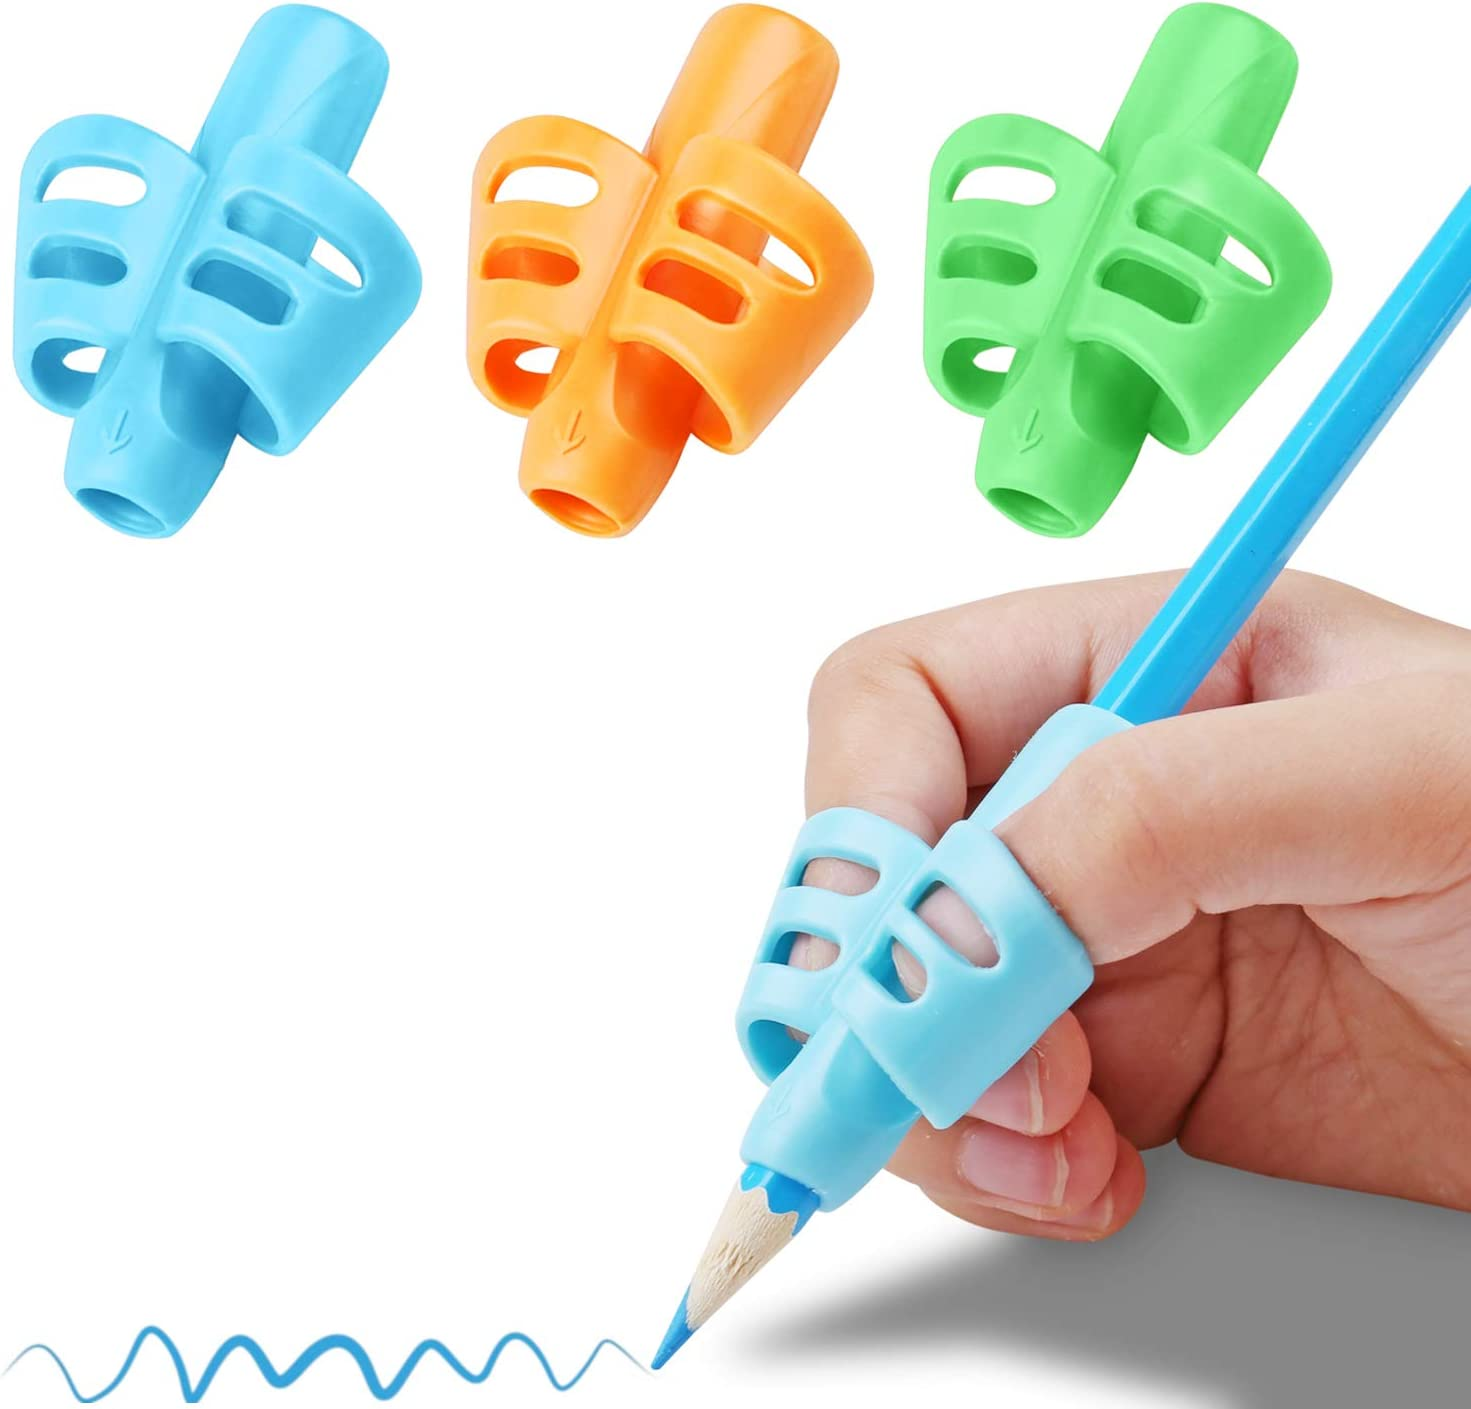 Kids Children Pencil Pen Holder Silicon Grip For Correct Writing Posture